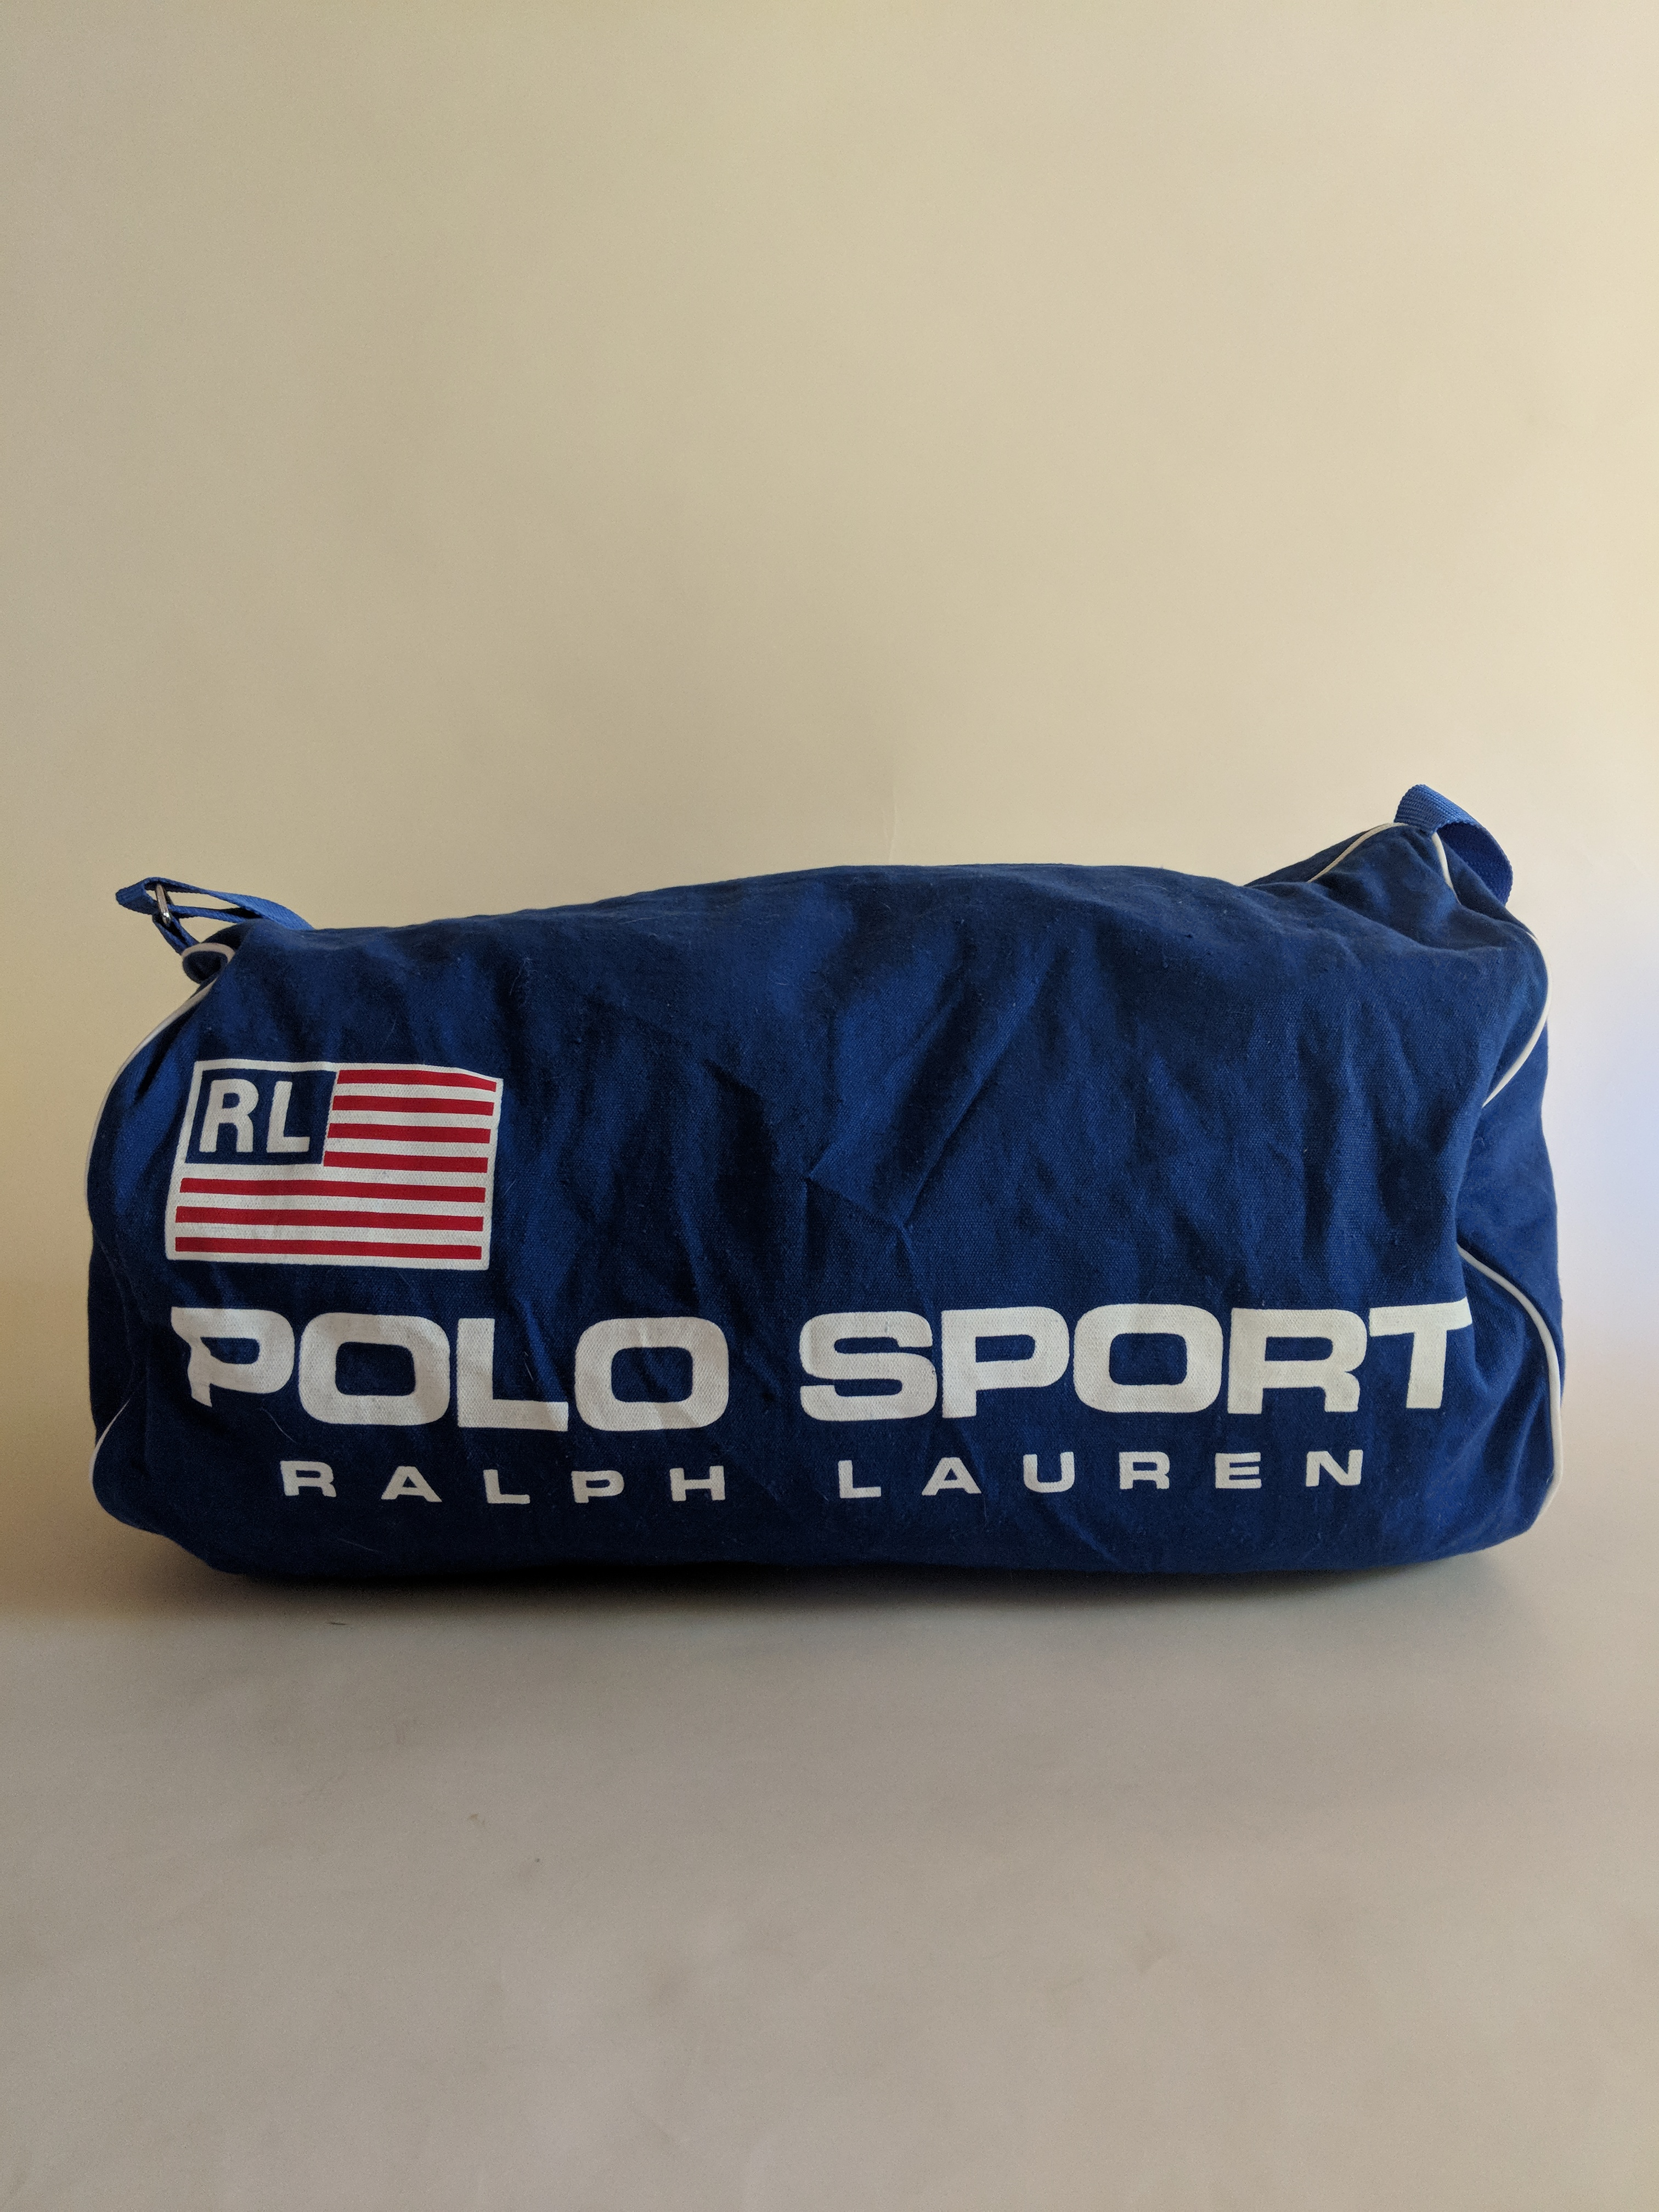 0eb238a0c4e5 Polo Ralph Lauren Vintage 1990s Ralph Lauren Polo Sport Gym Duffel Bag     Supreme    Carry On Size one size - Bags   Luggage for Sale - Grailed